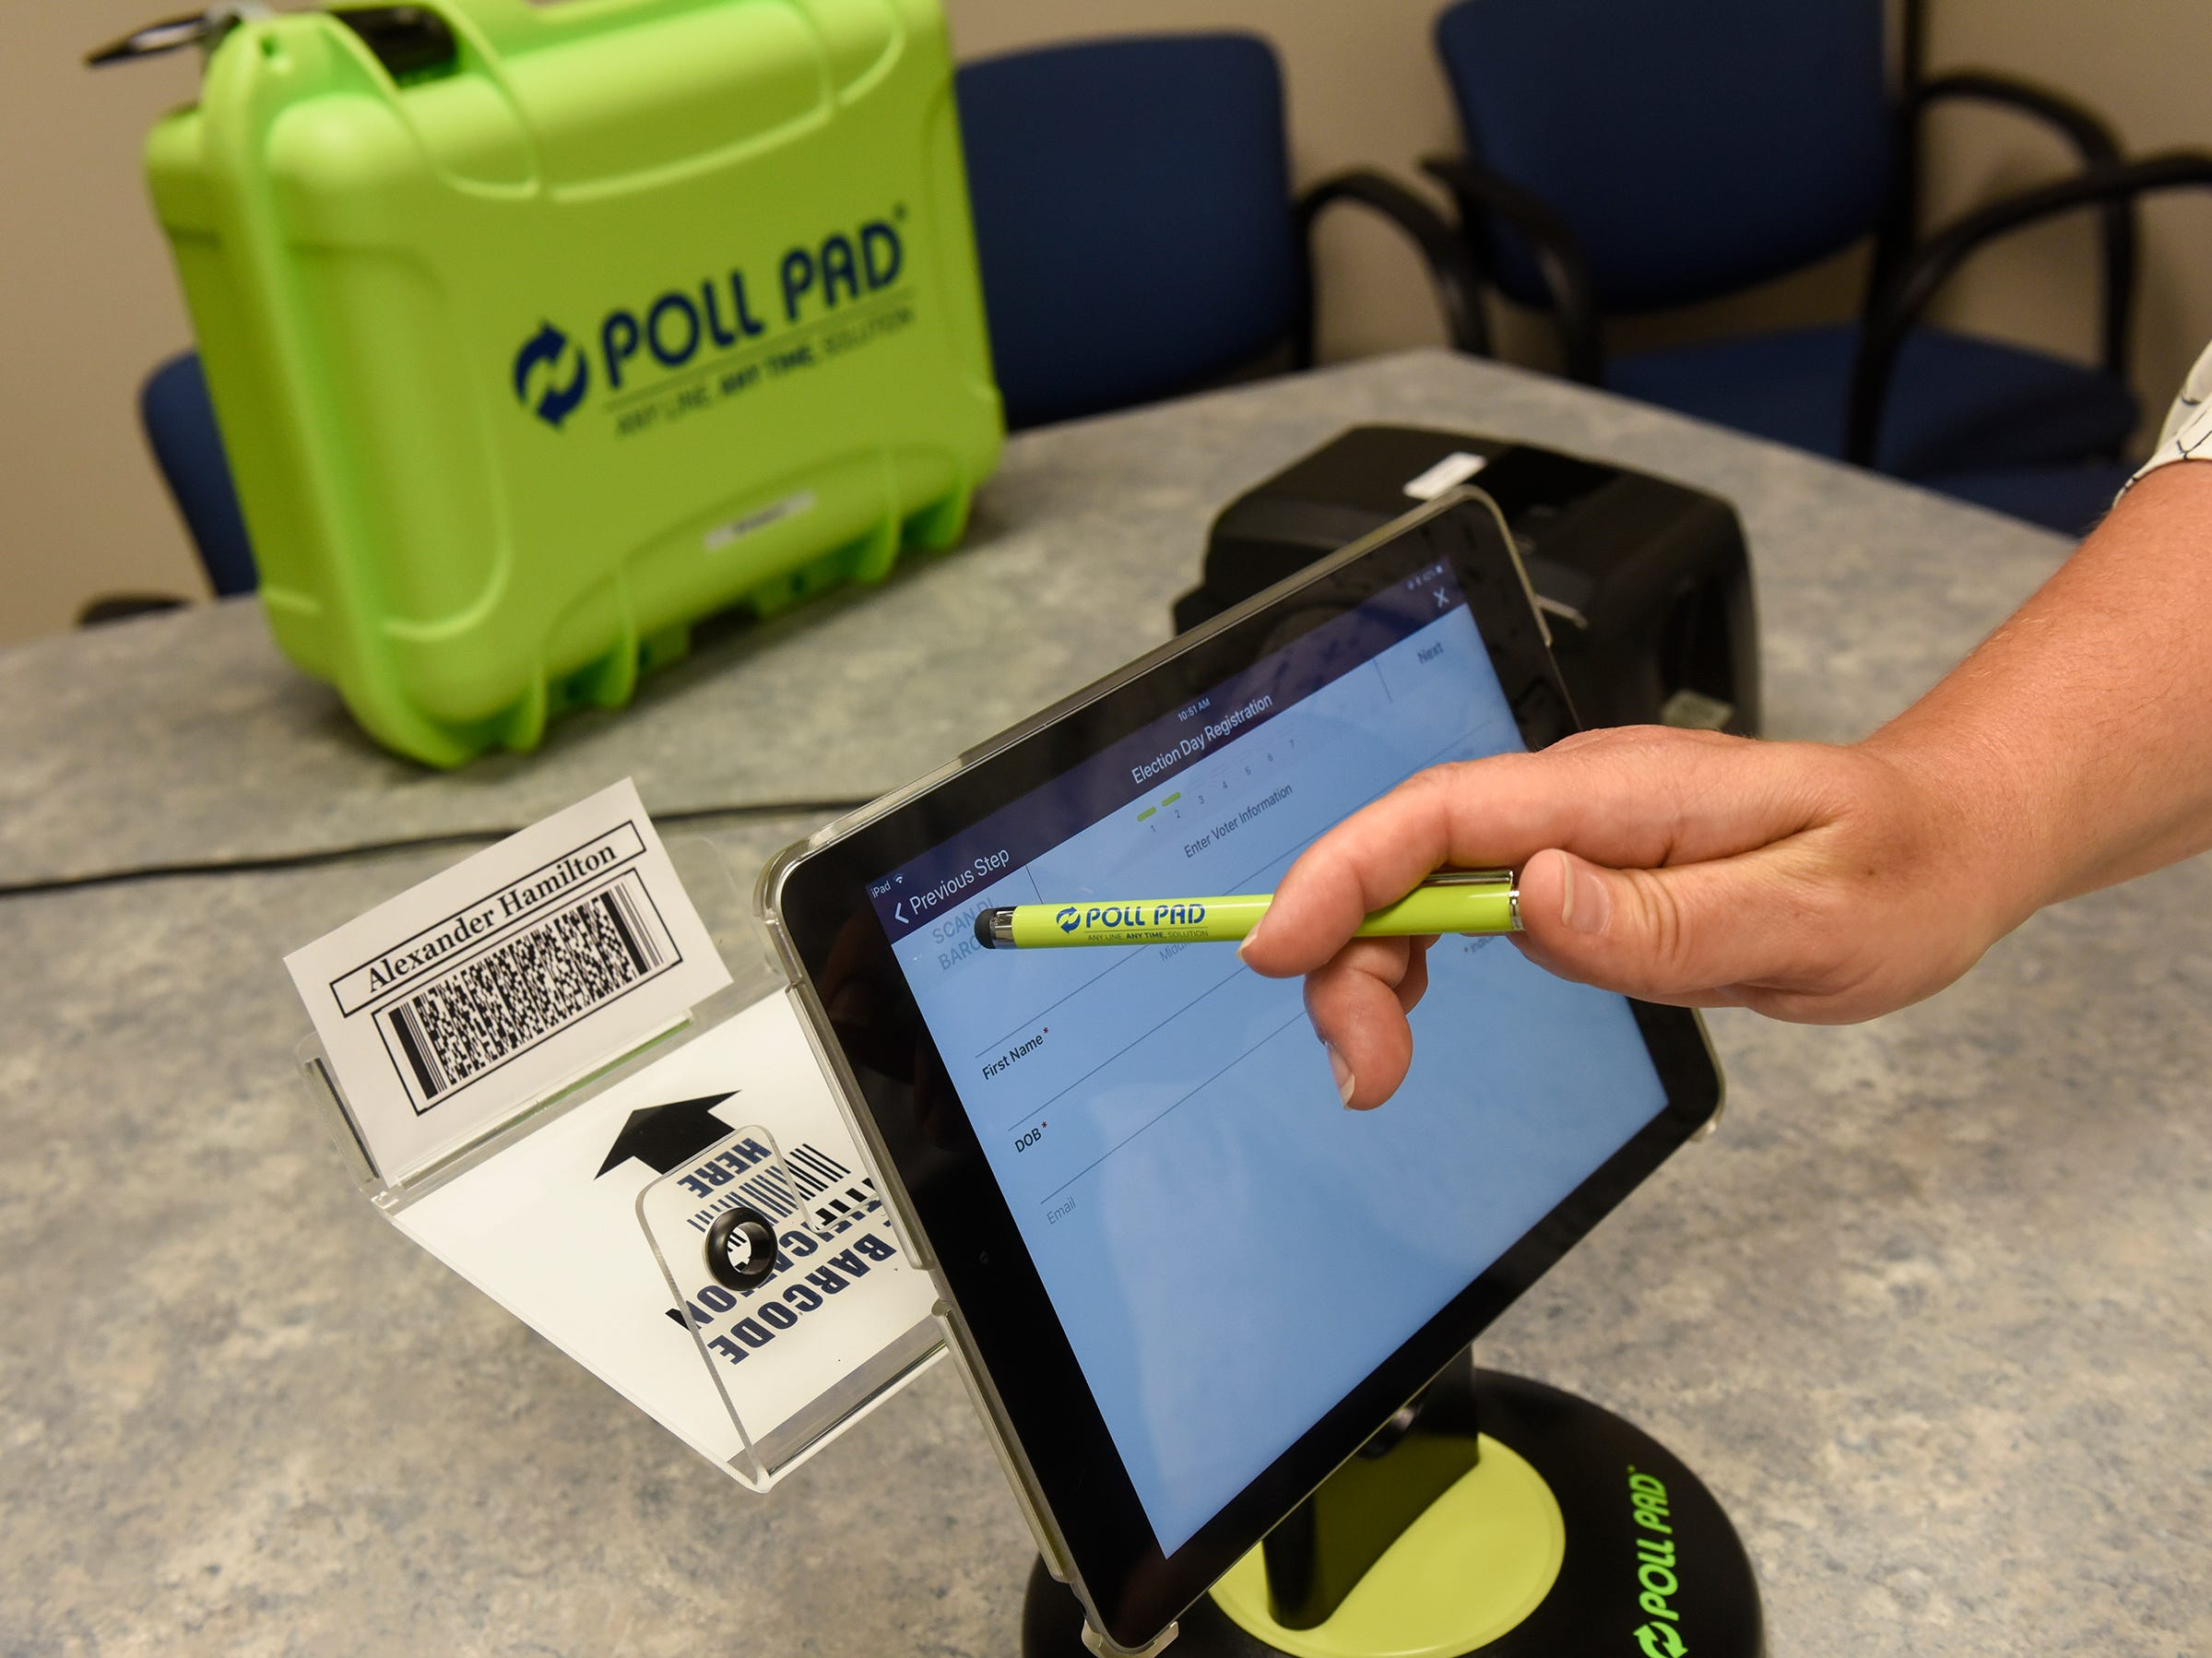 High-tech equipment ready for use at Stearns County polls